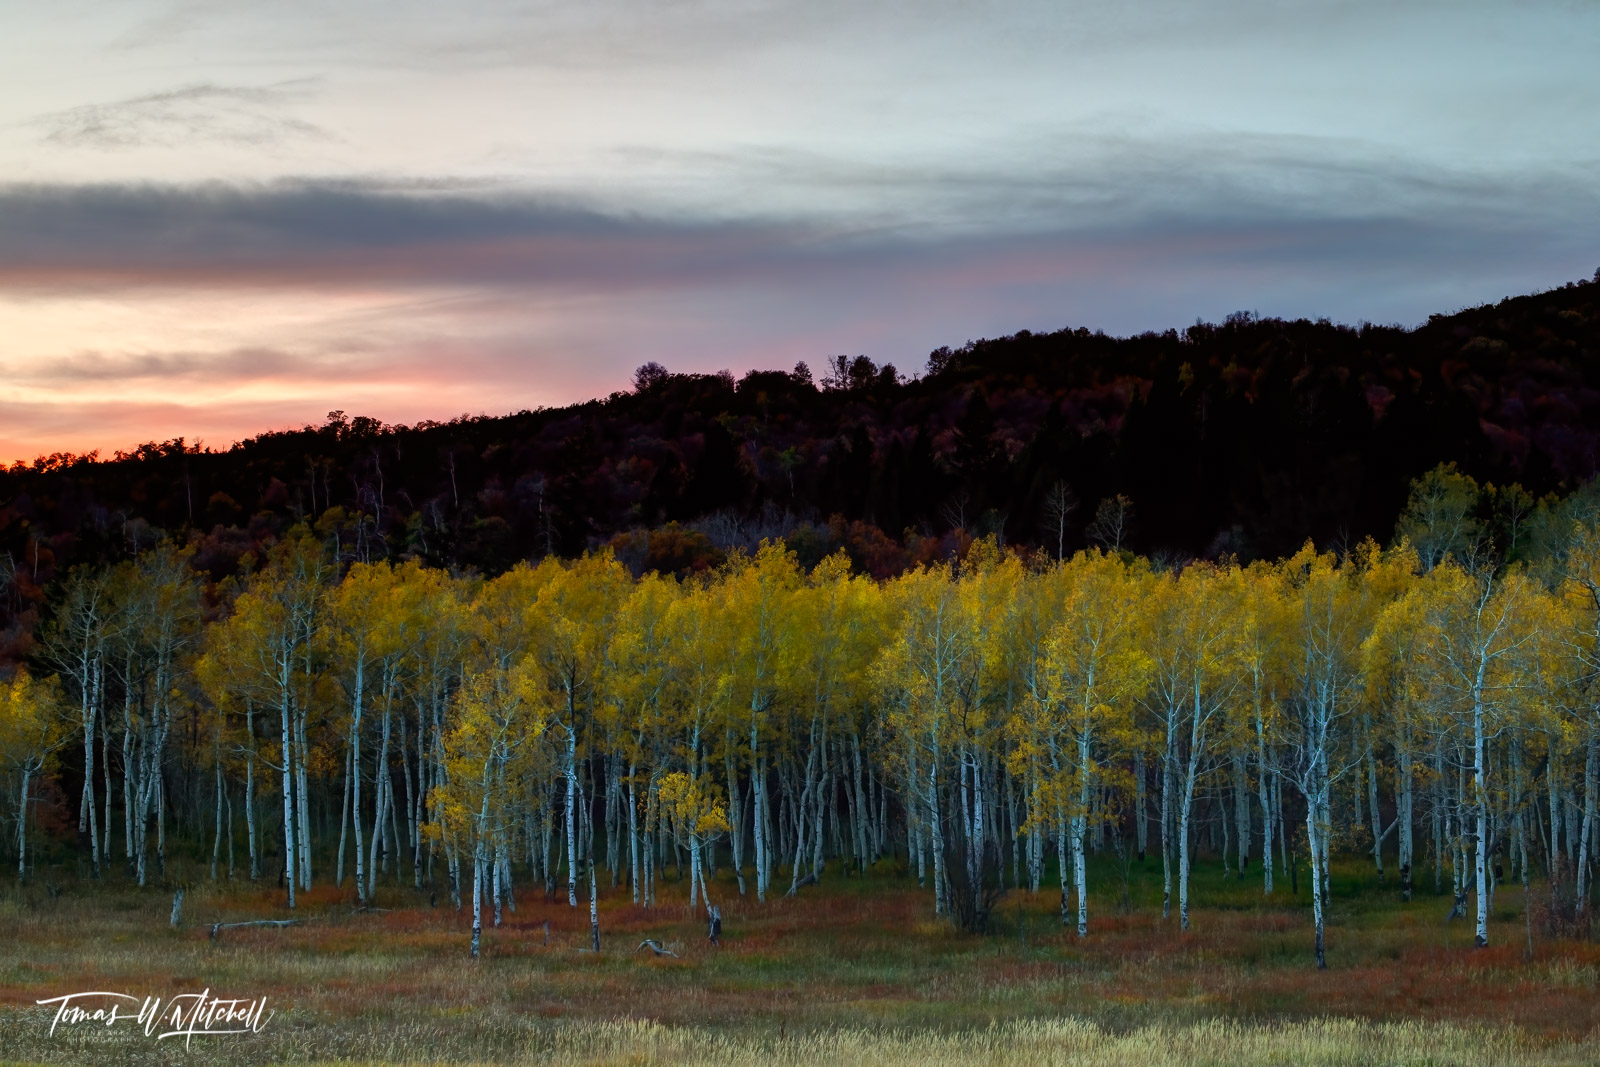 limited edition, fine art, prints, trees, mood, enchanted forest, aspen trees, sunset, photograph, shades, color, dusk, leaves, grass, evening, yellow, red, green, photo